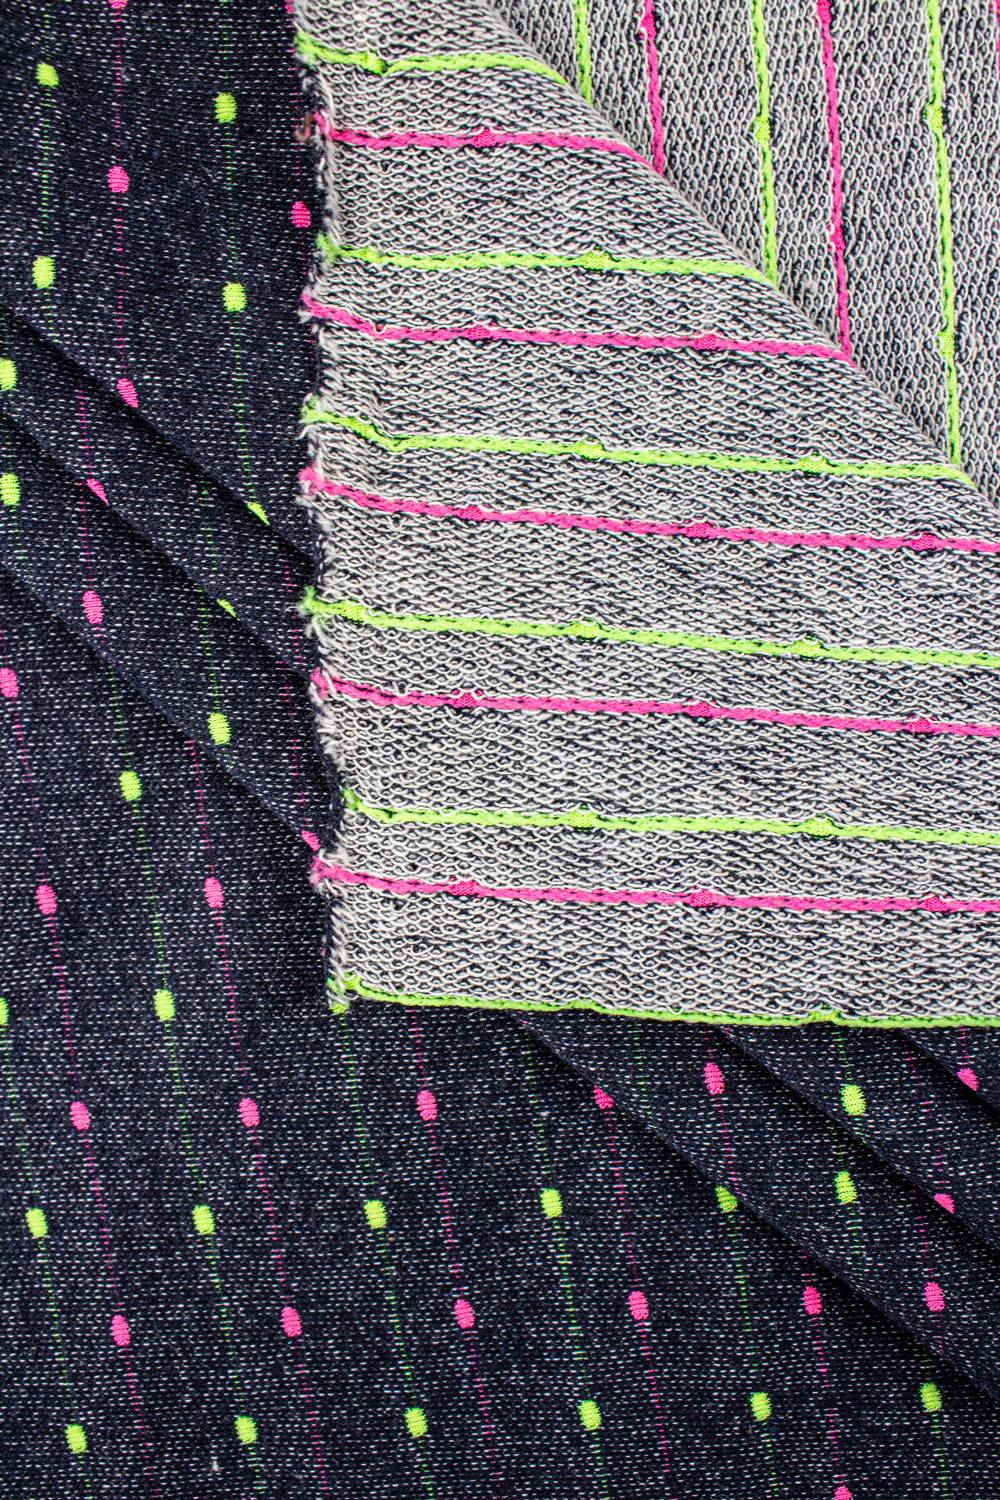 Knit - French Terry - Neon Spots - 185 cm - 220 g/m2